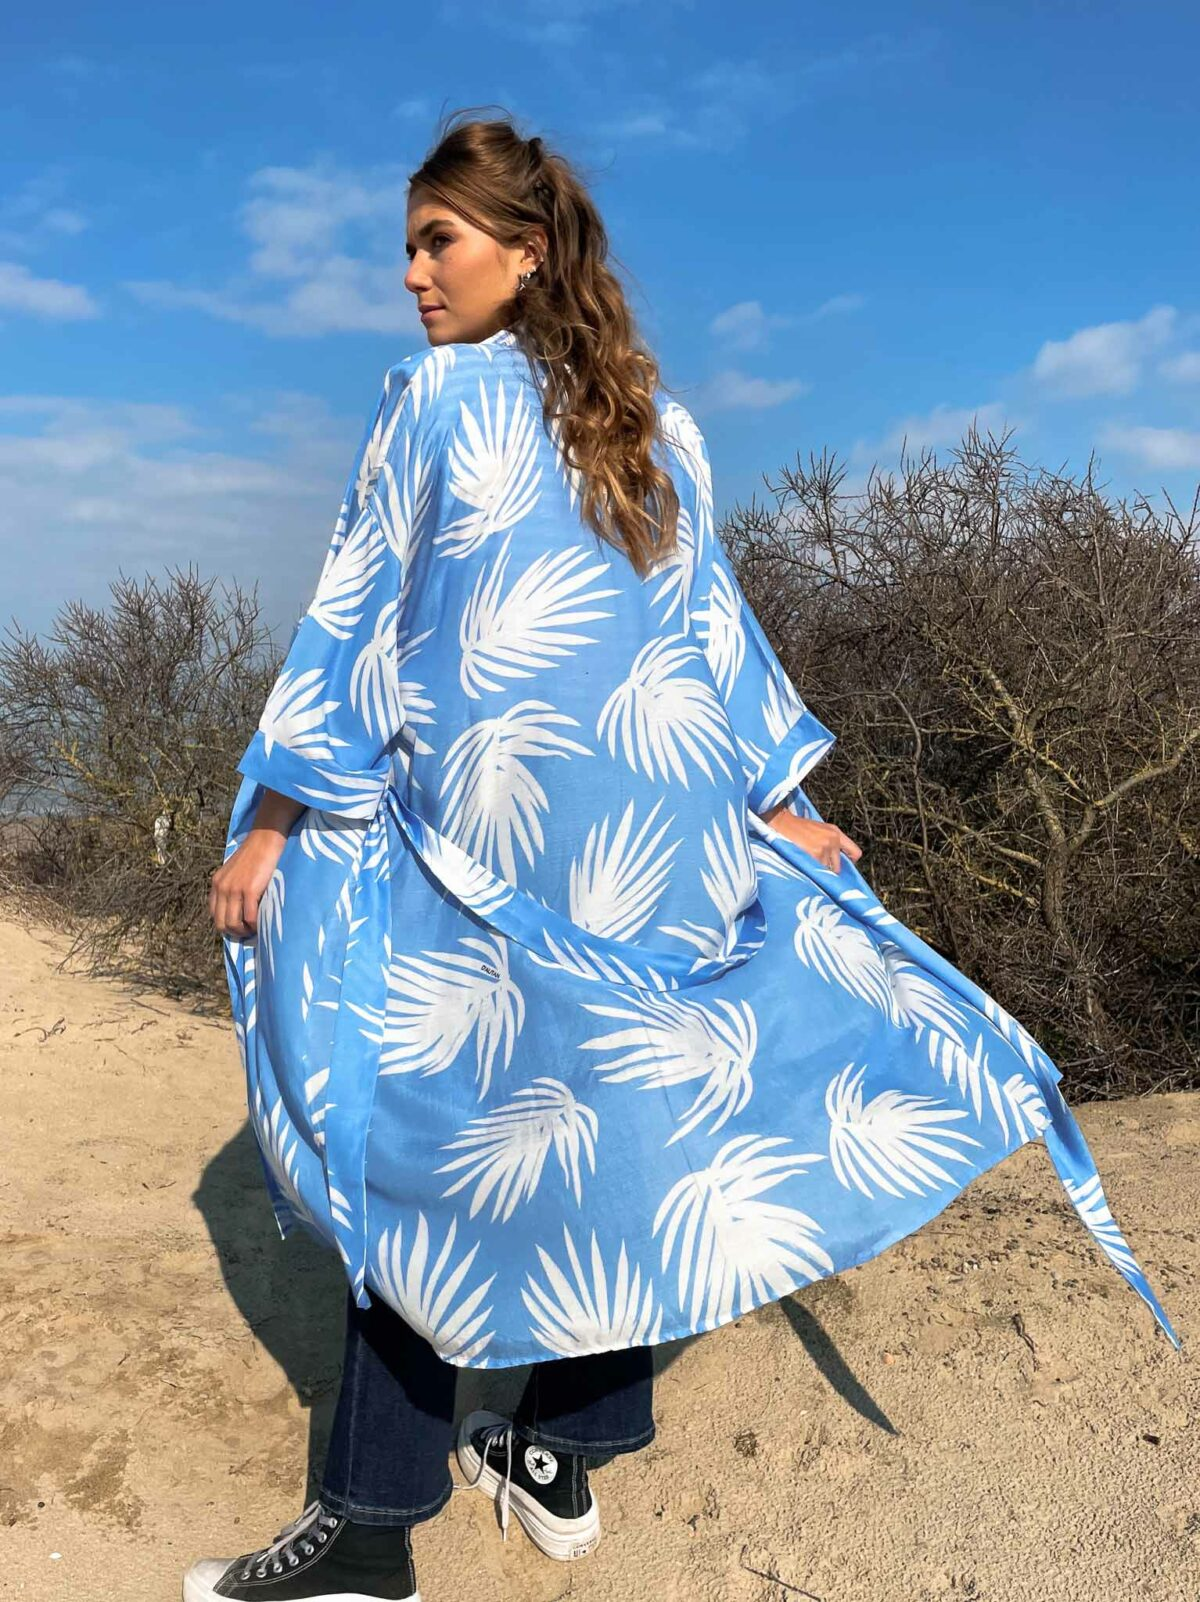 woman on the beach wearing a blue and white kimono